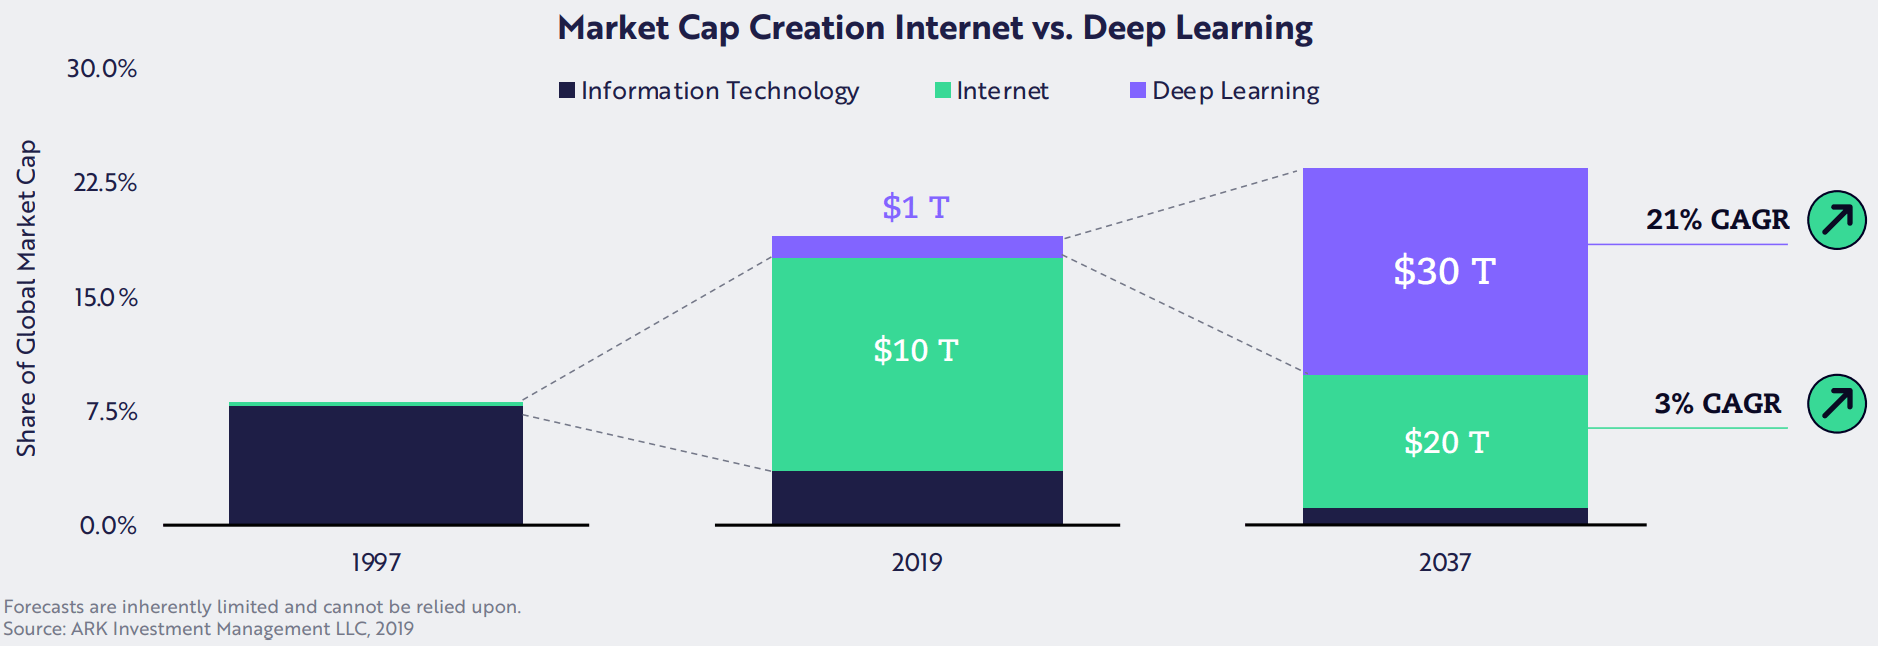 Information Technology had about 7.5% of the share of the global market cap, and in 2019, AI took about 20%. In 2037, we expect Deep Learning to be around $30T.